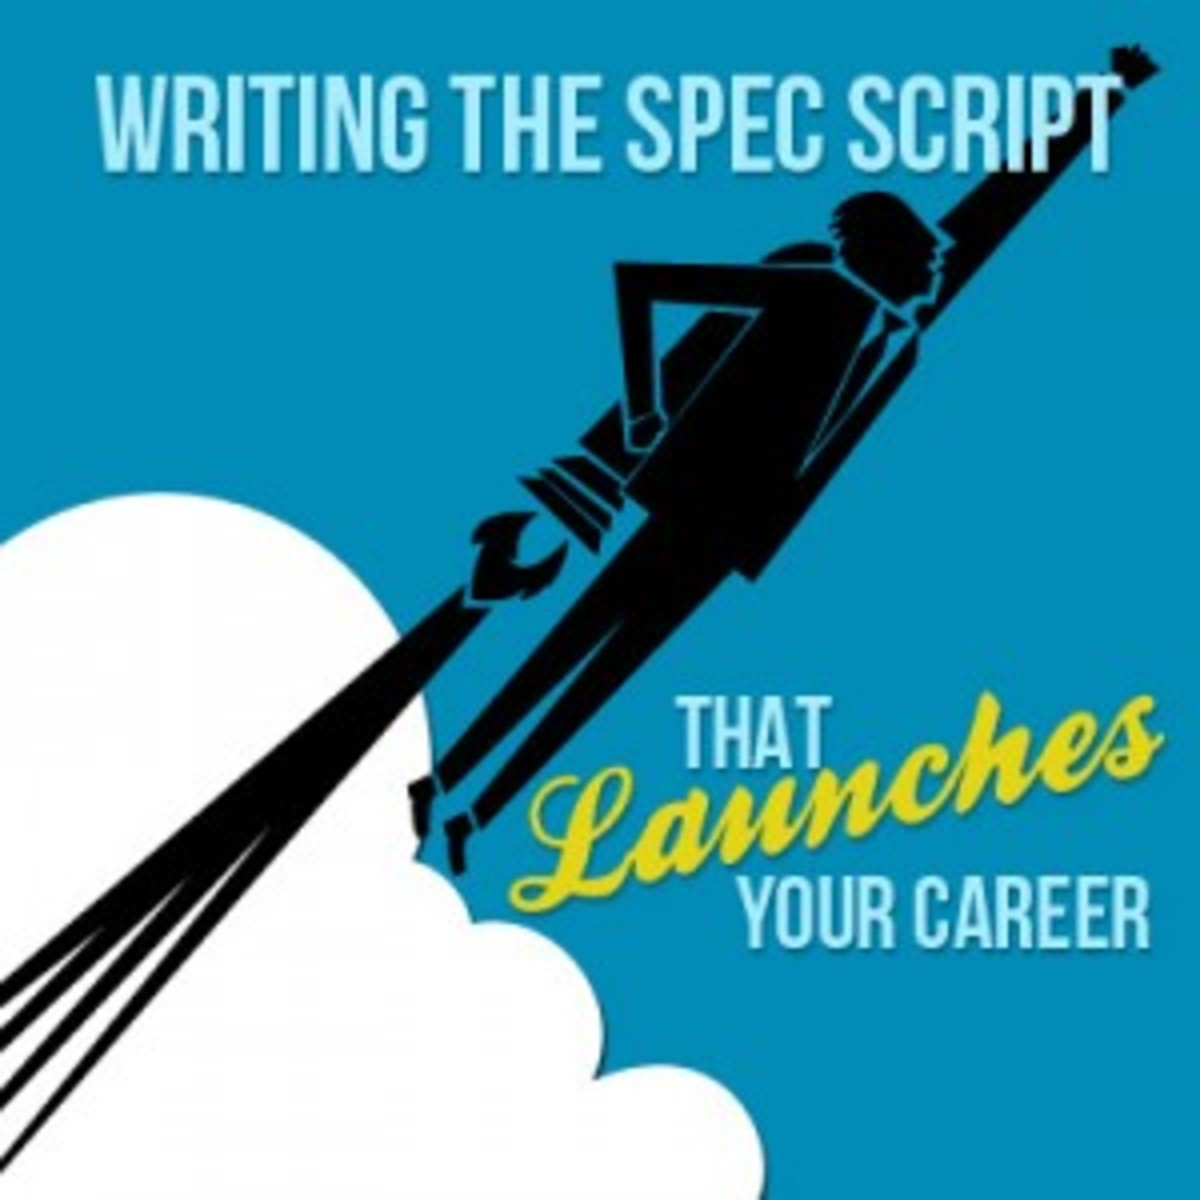 scriptlaunchcareer_medium